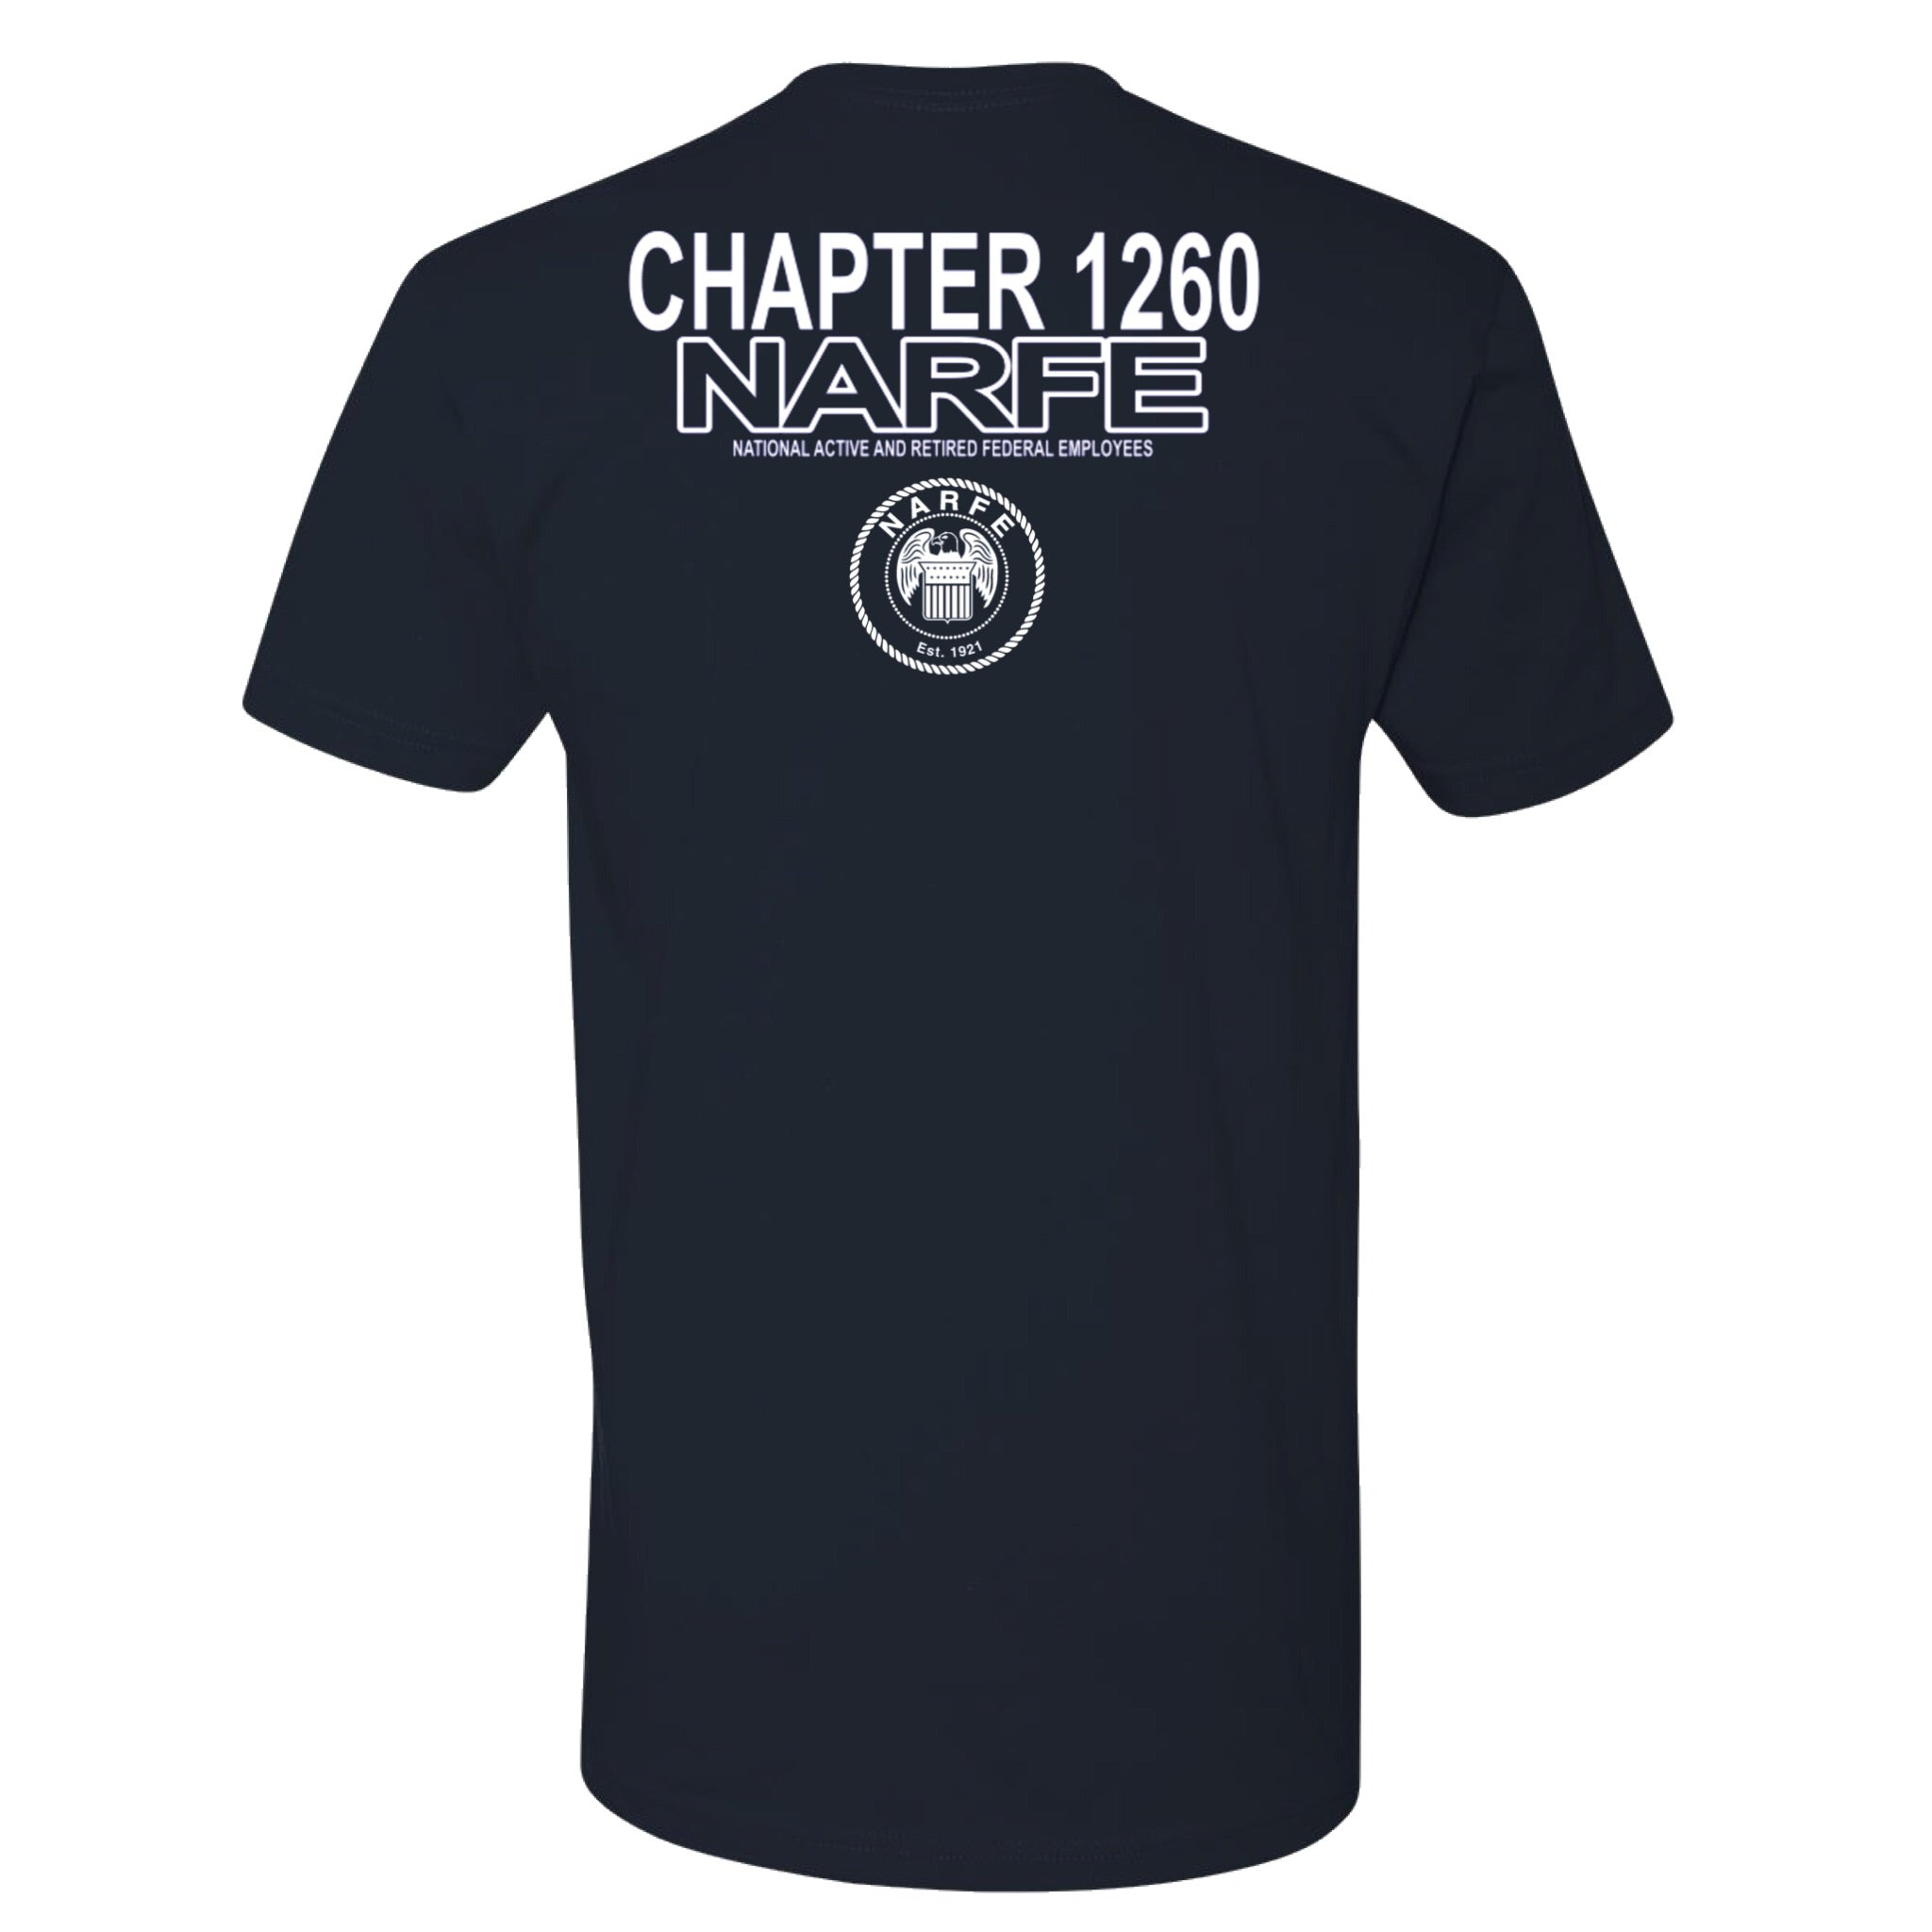 NARFE Chapter 1260 Fundraiser Shirt